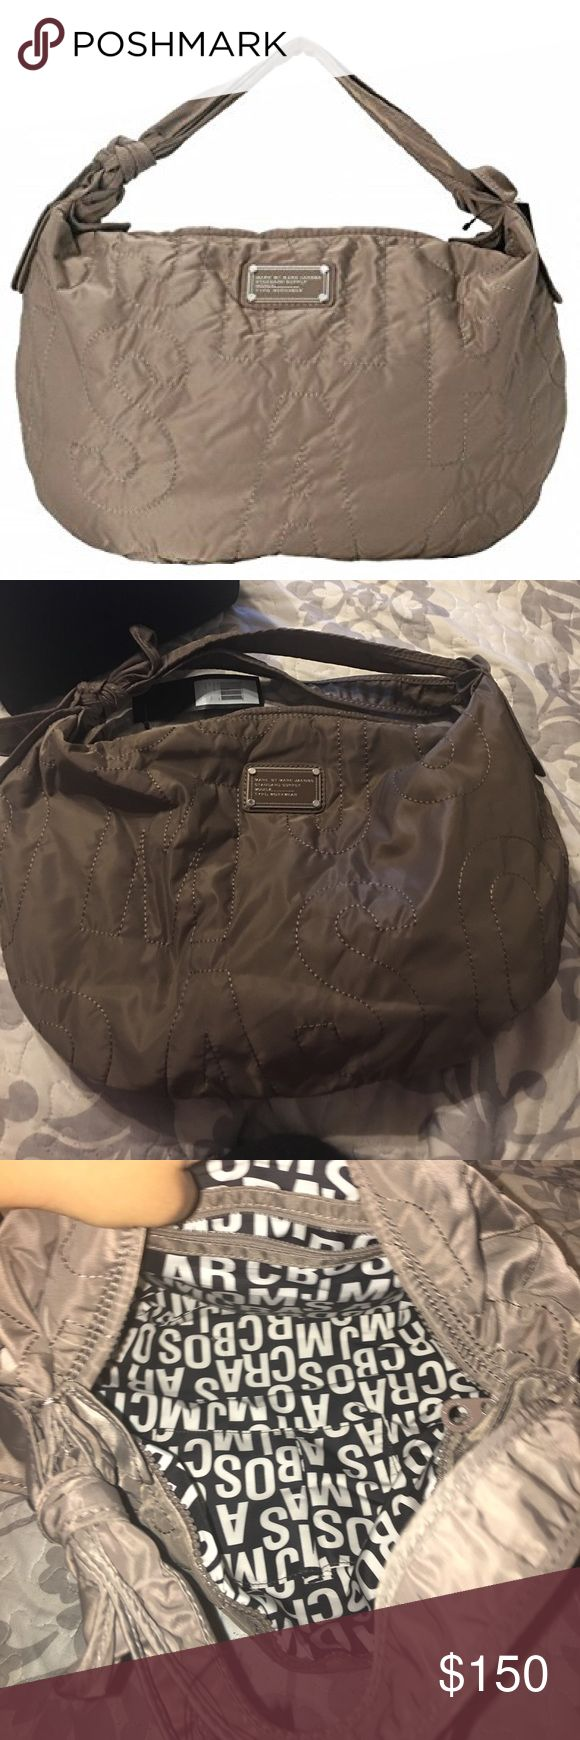 Marc jacobs Brand new hobo bag no stains no damage Marc Jacobs Bags Hobos